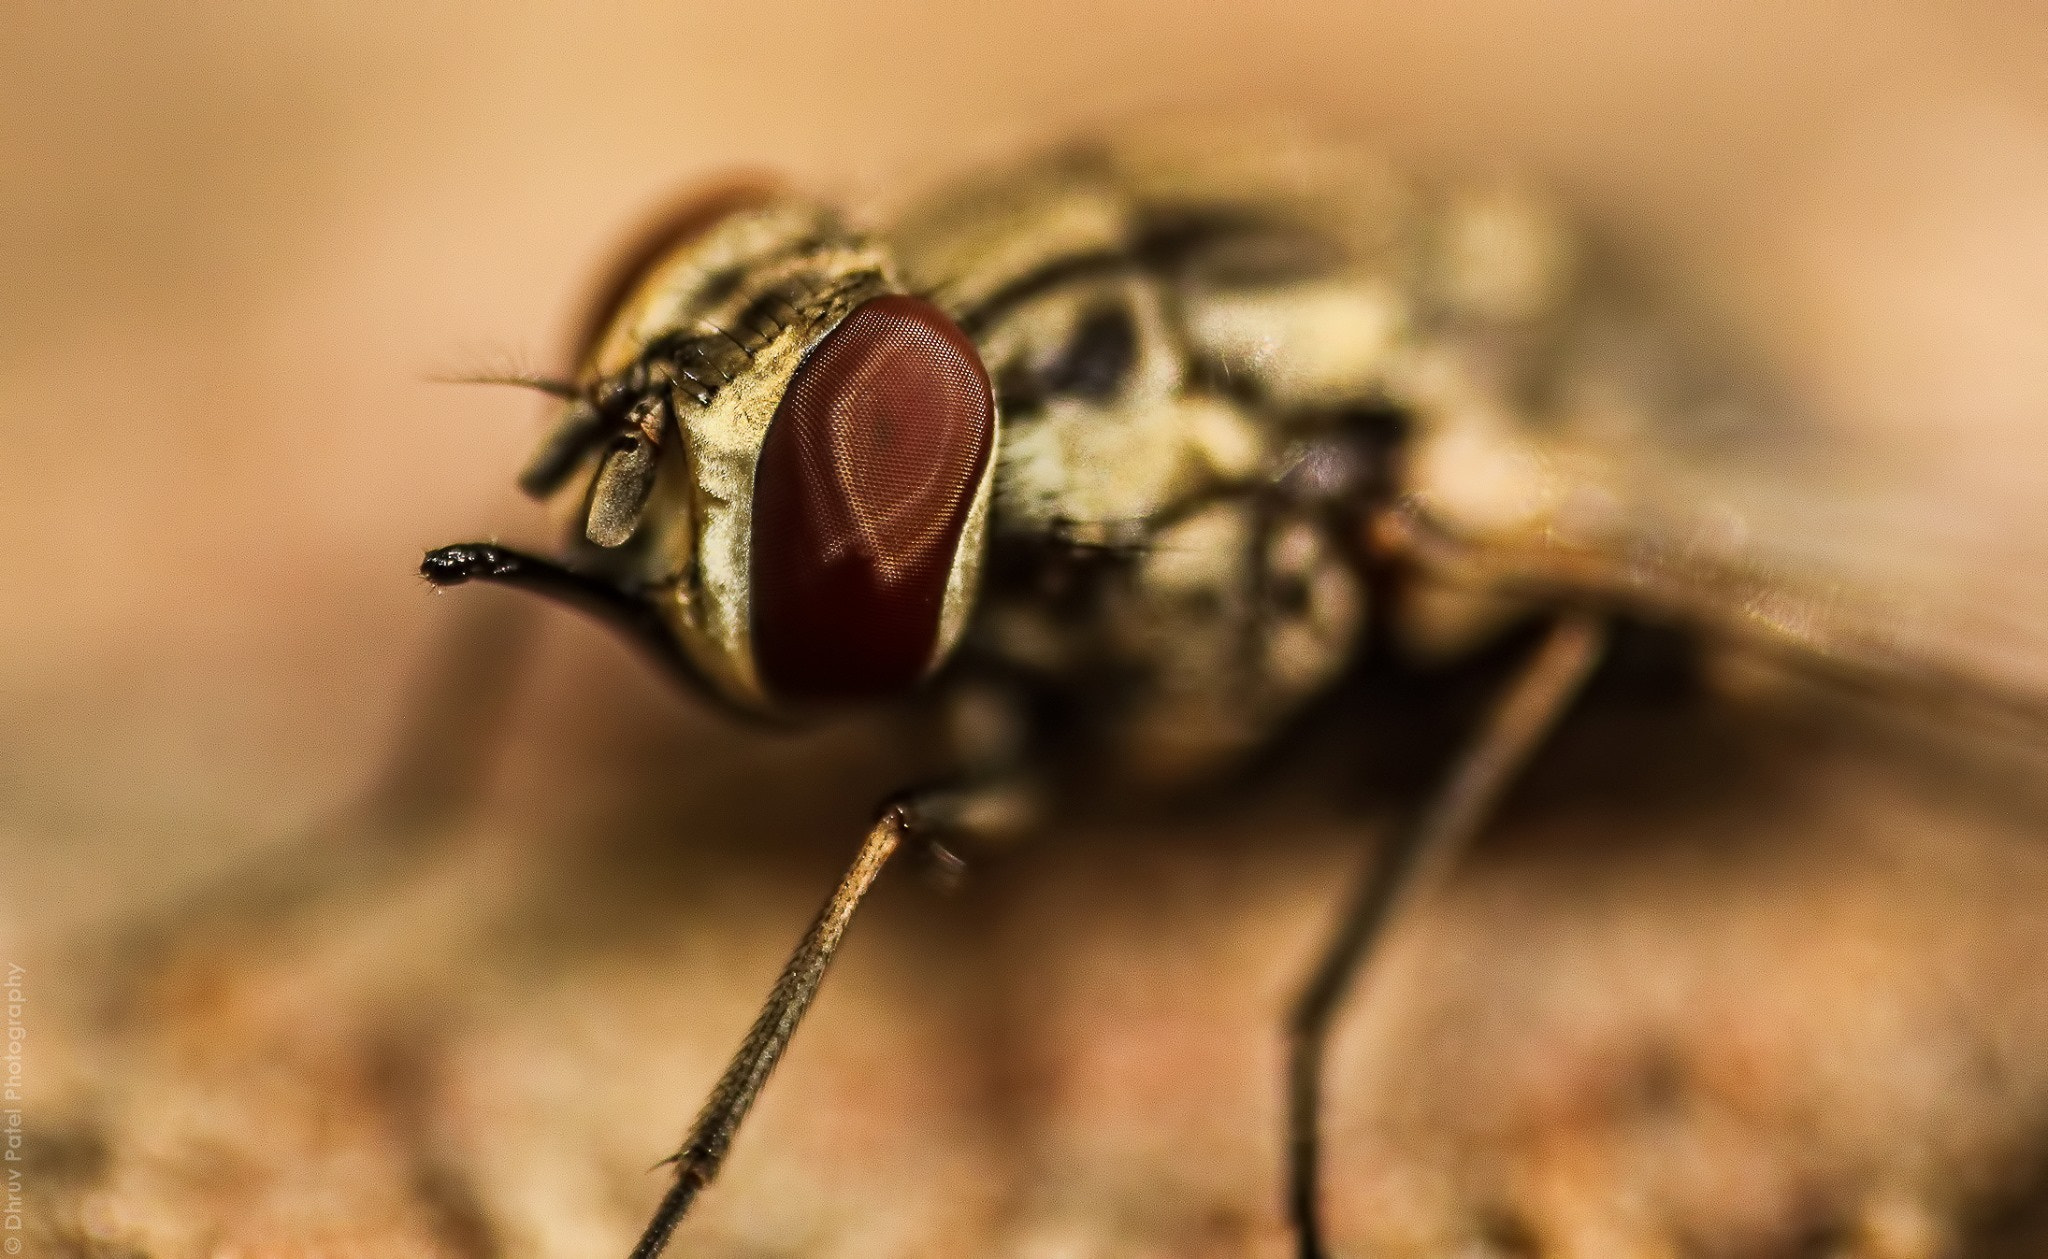 Photograph Fly by Dhruv Patel on 500px